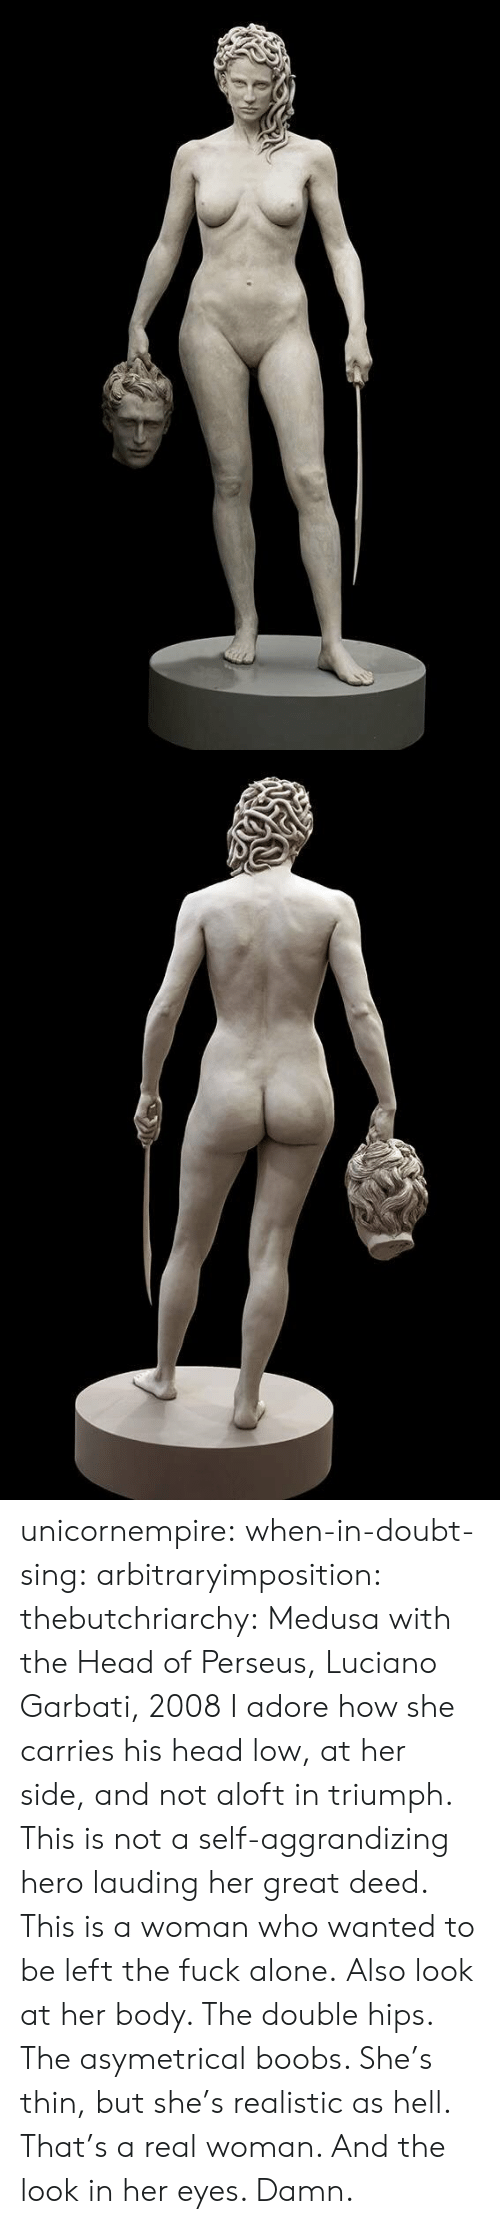 perseus: unicornempire:  when-in-doubt-sing:  arbitraryimposition:  thebutchriarchy: Medusa with the Head of Perseus, Luciano Garbati, 2008 I adore how she carries his head low, at her side, and not aloft in triumph.  This is not a self-aggrandizing hero lauding her great deed. This is a woman who wanted to be left the fuck alone.   Also look at her body. The double hips. The asymetrical boobs. She's thin, but she's realistic as hell. That's a real woman.  And the look in her eyes. Damn.